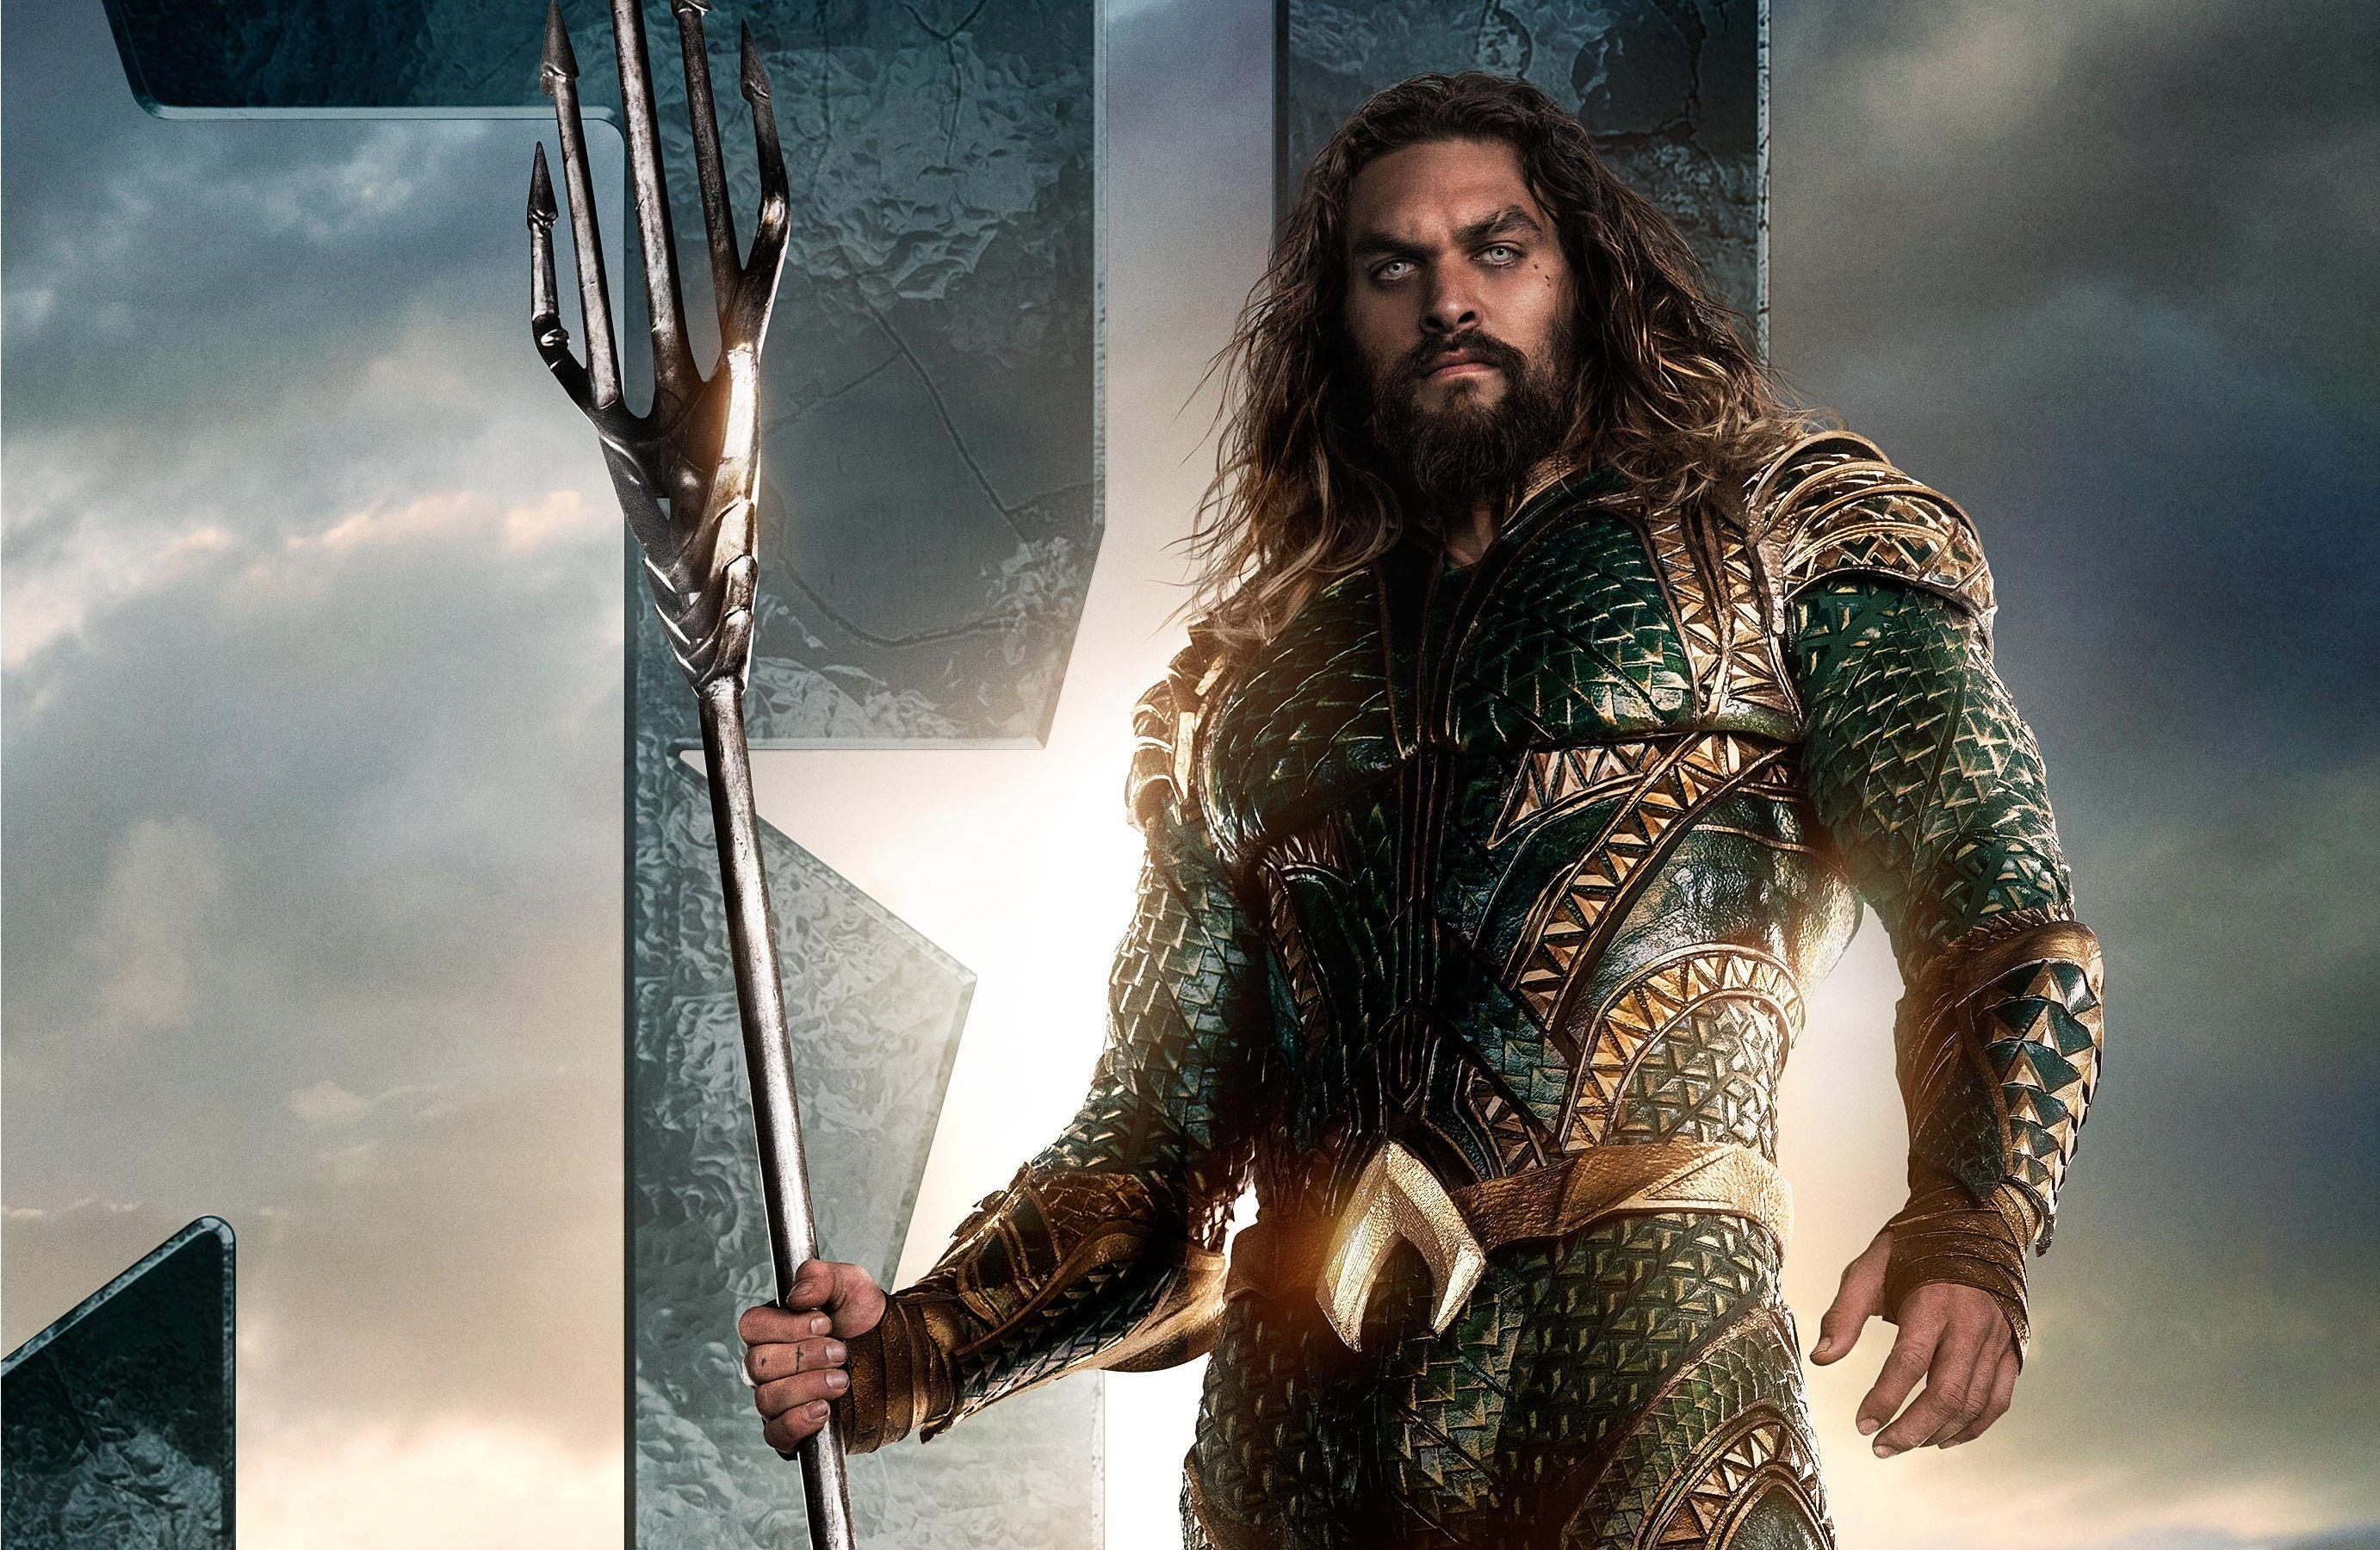 aqua man jason momoa poster dc comics pc hd wallpaper